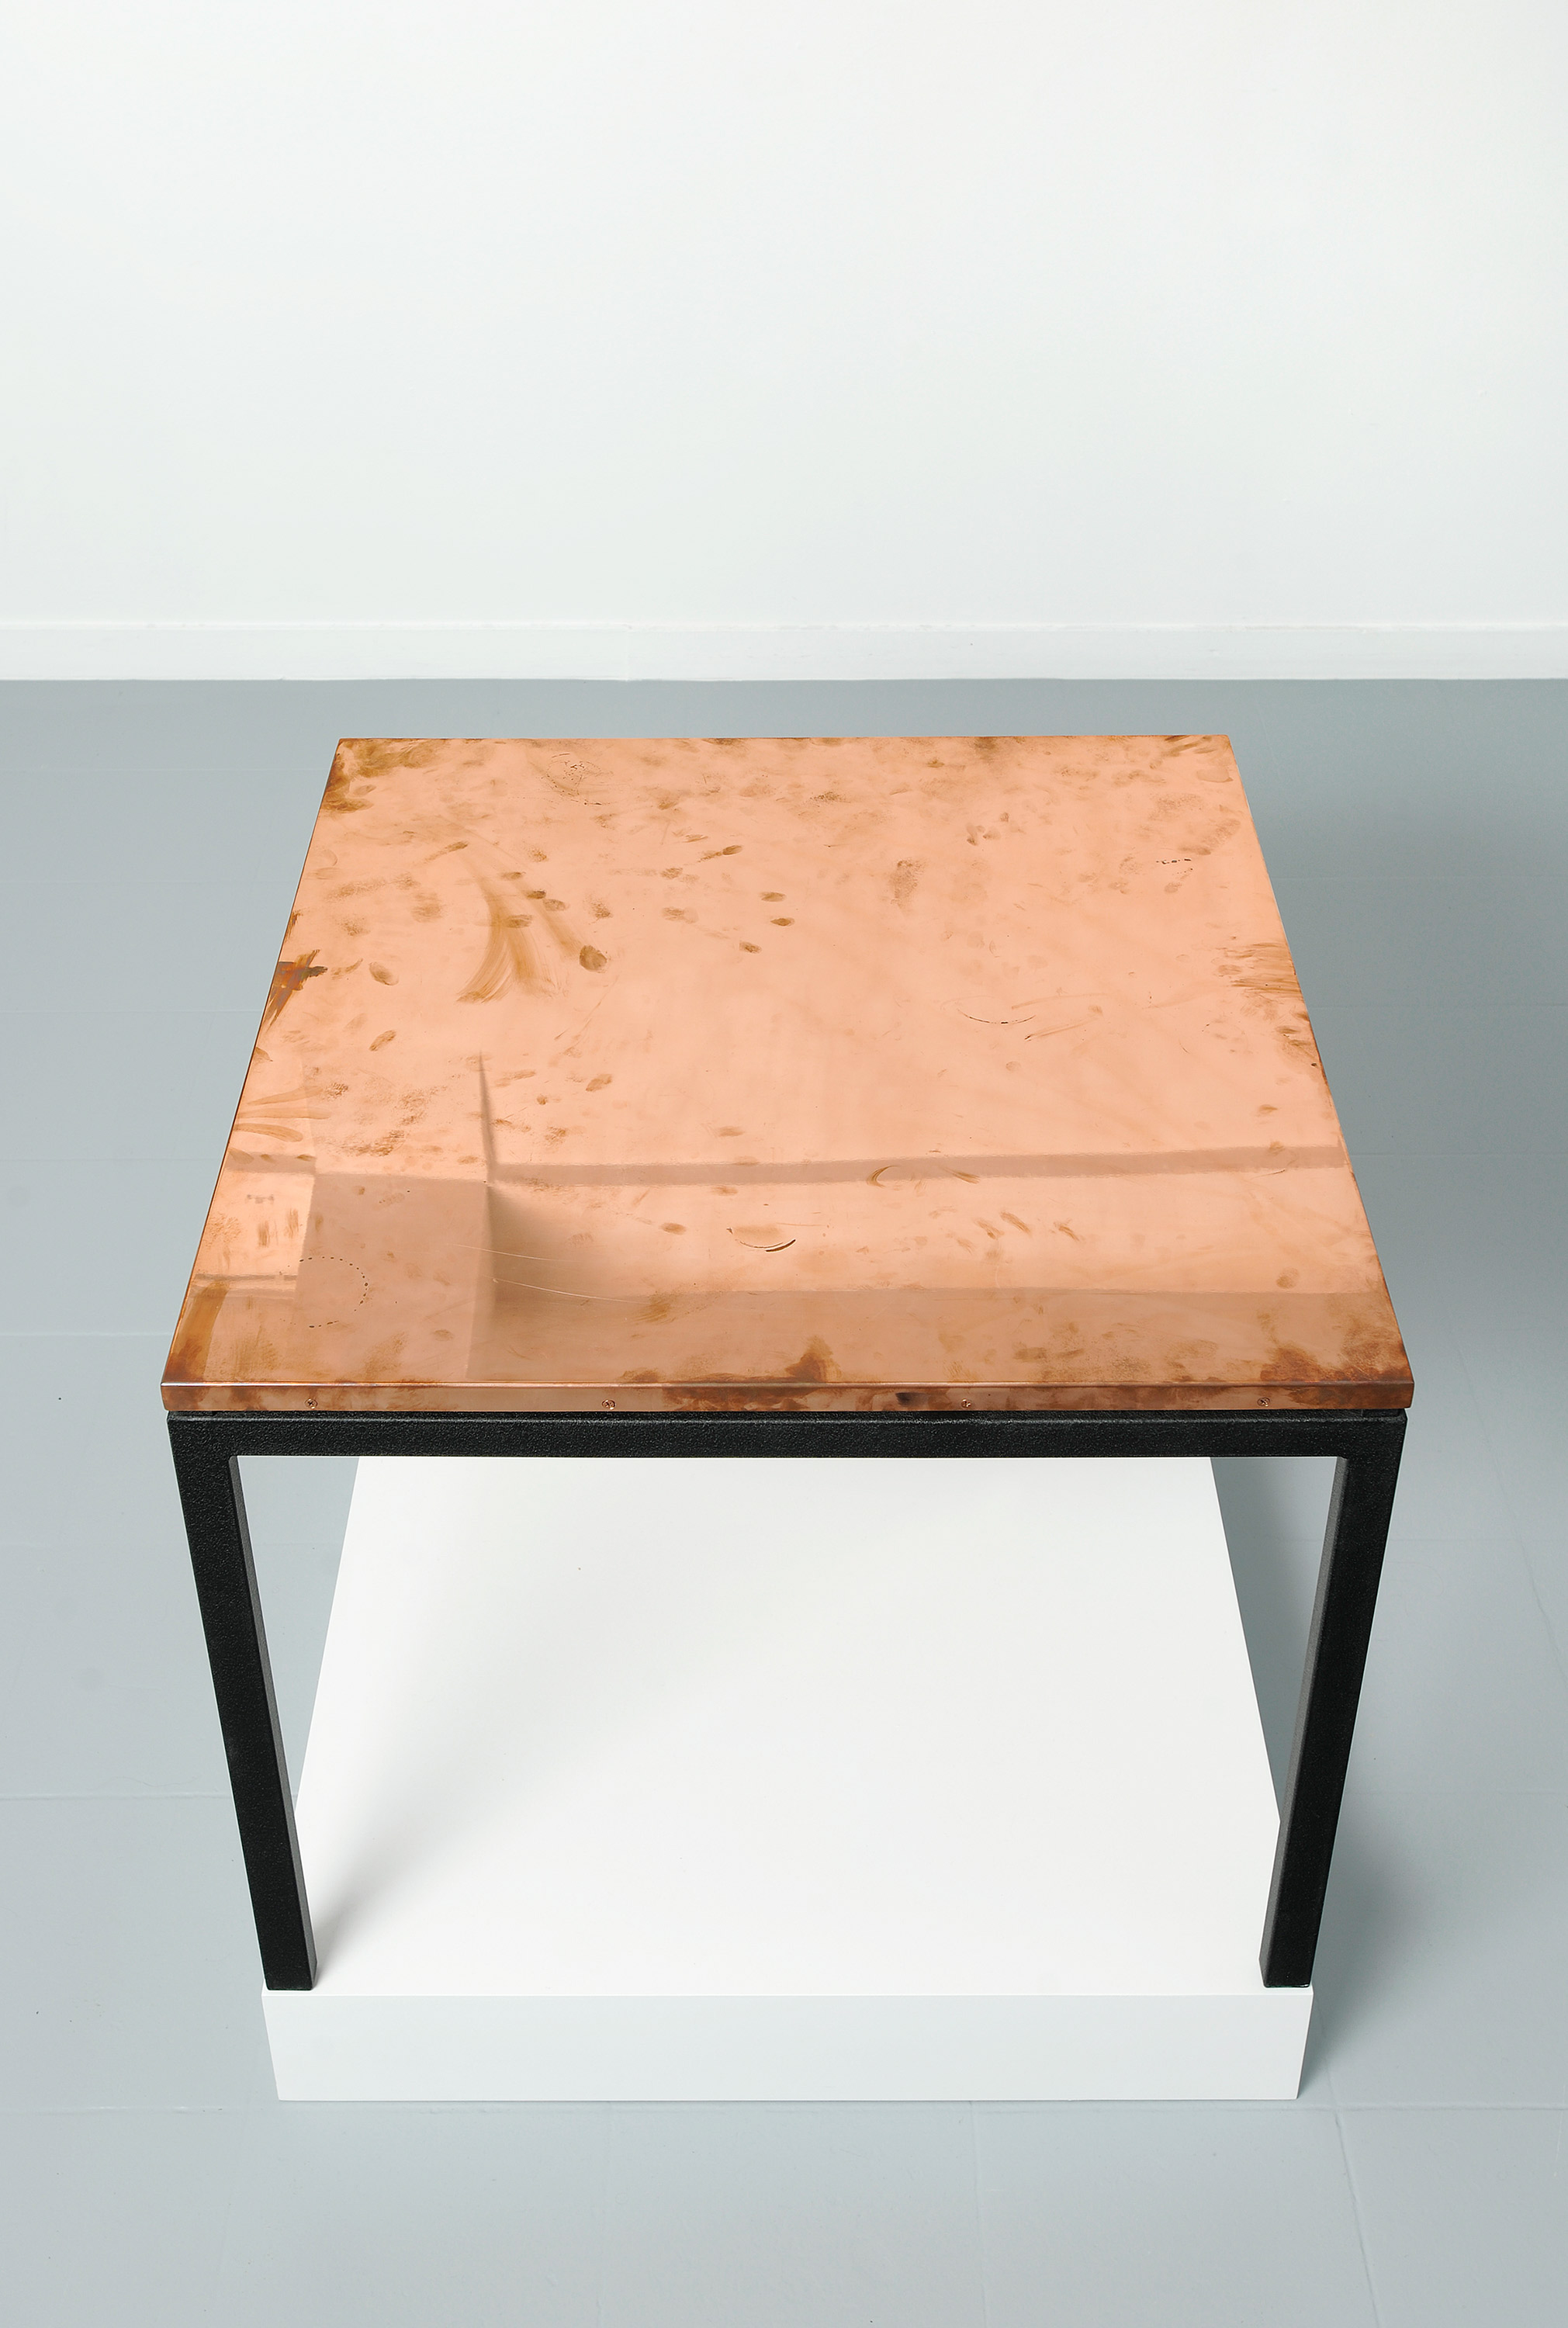 Copper Surrogate (Table: designed by Charlotte Perriand and Le Corbusier, 1959; Galerie Rodolphe Janssen, Brussels, Belgium, August 10th–September 2nd, 2011)    2011   Polished copper table top and powder-coat steel  Table: 33 5/8 x 33 5/8 x 1 inches   Surrogates (Tabletop and Desktop), 2008–